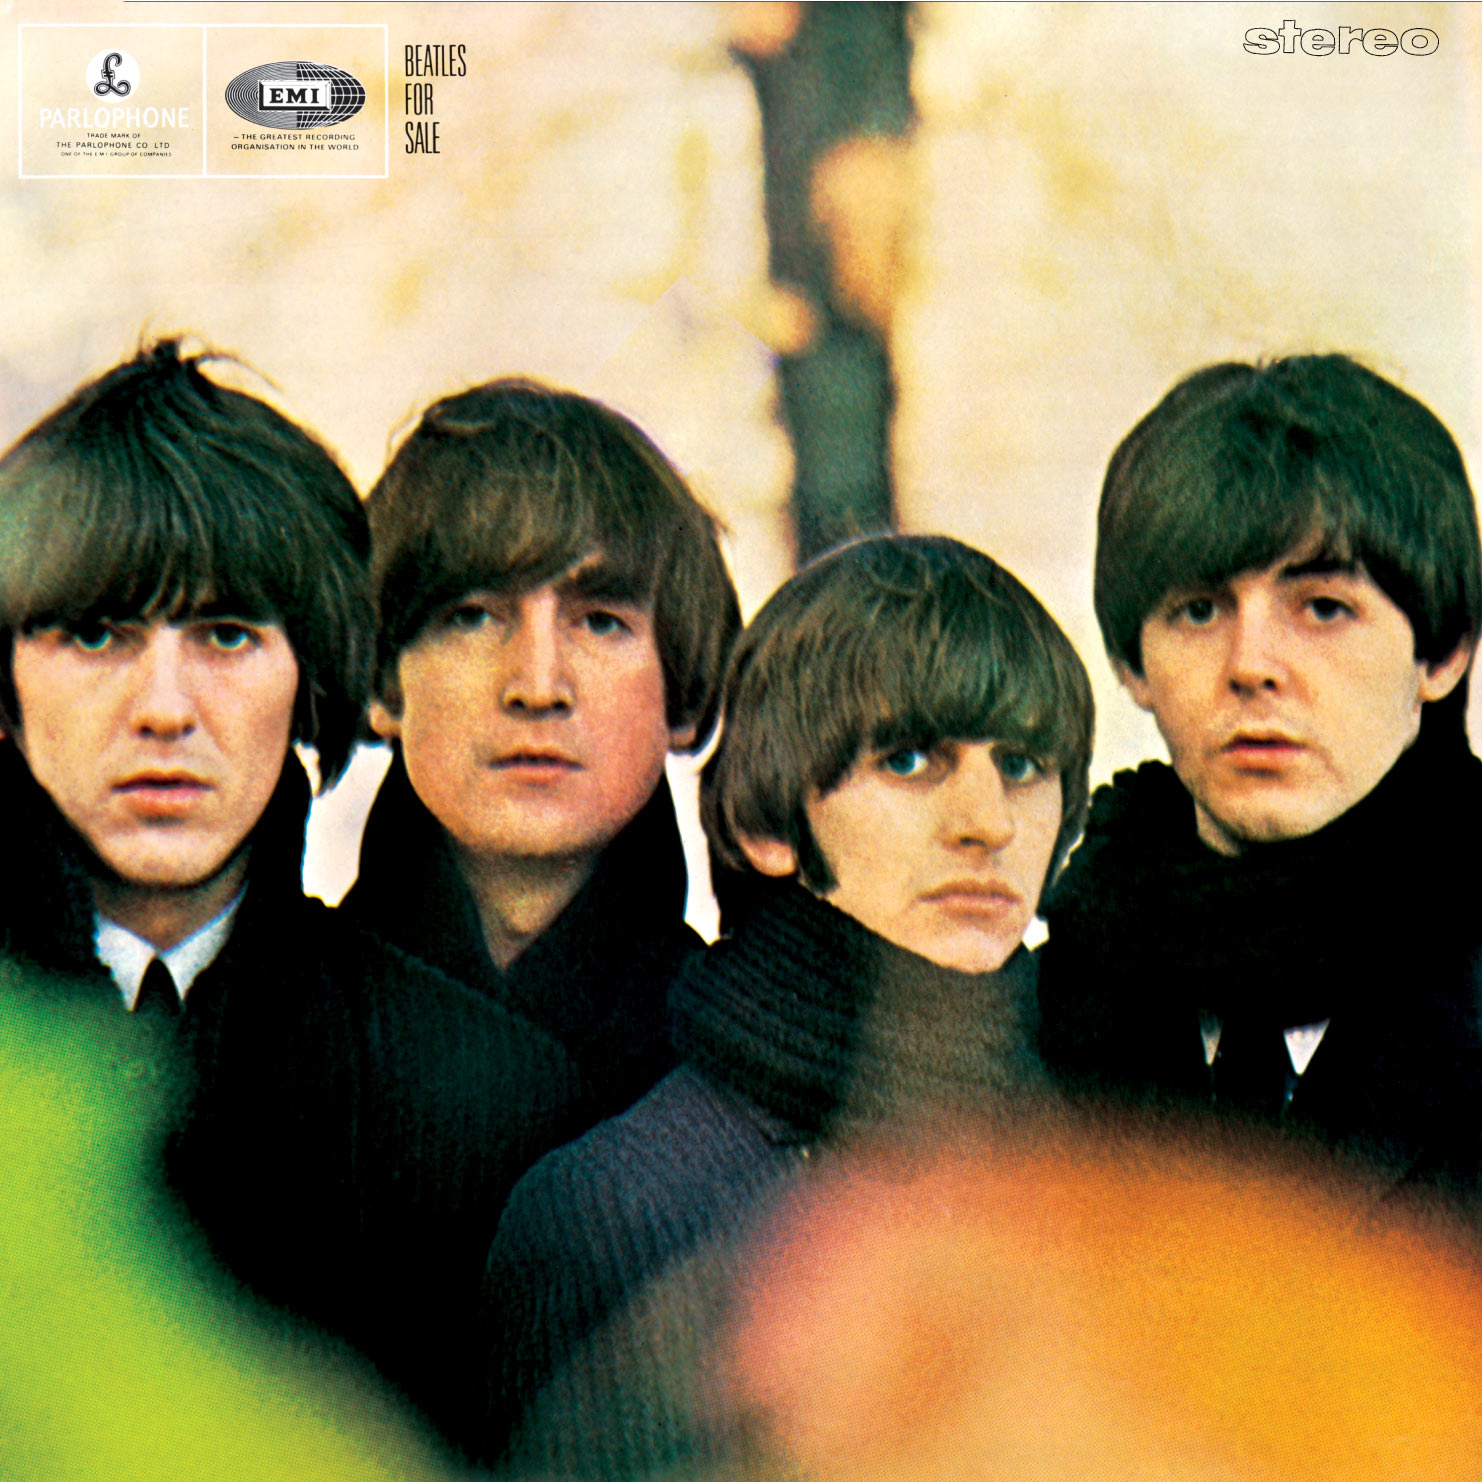 Beatles | Beatles for Sale | EMI, 1964